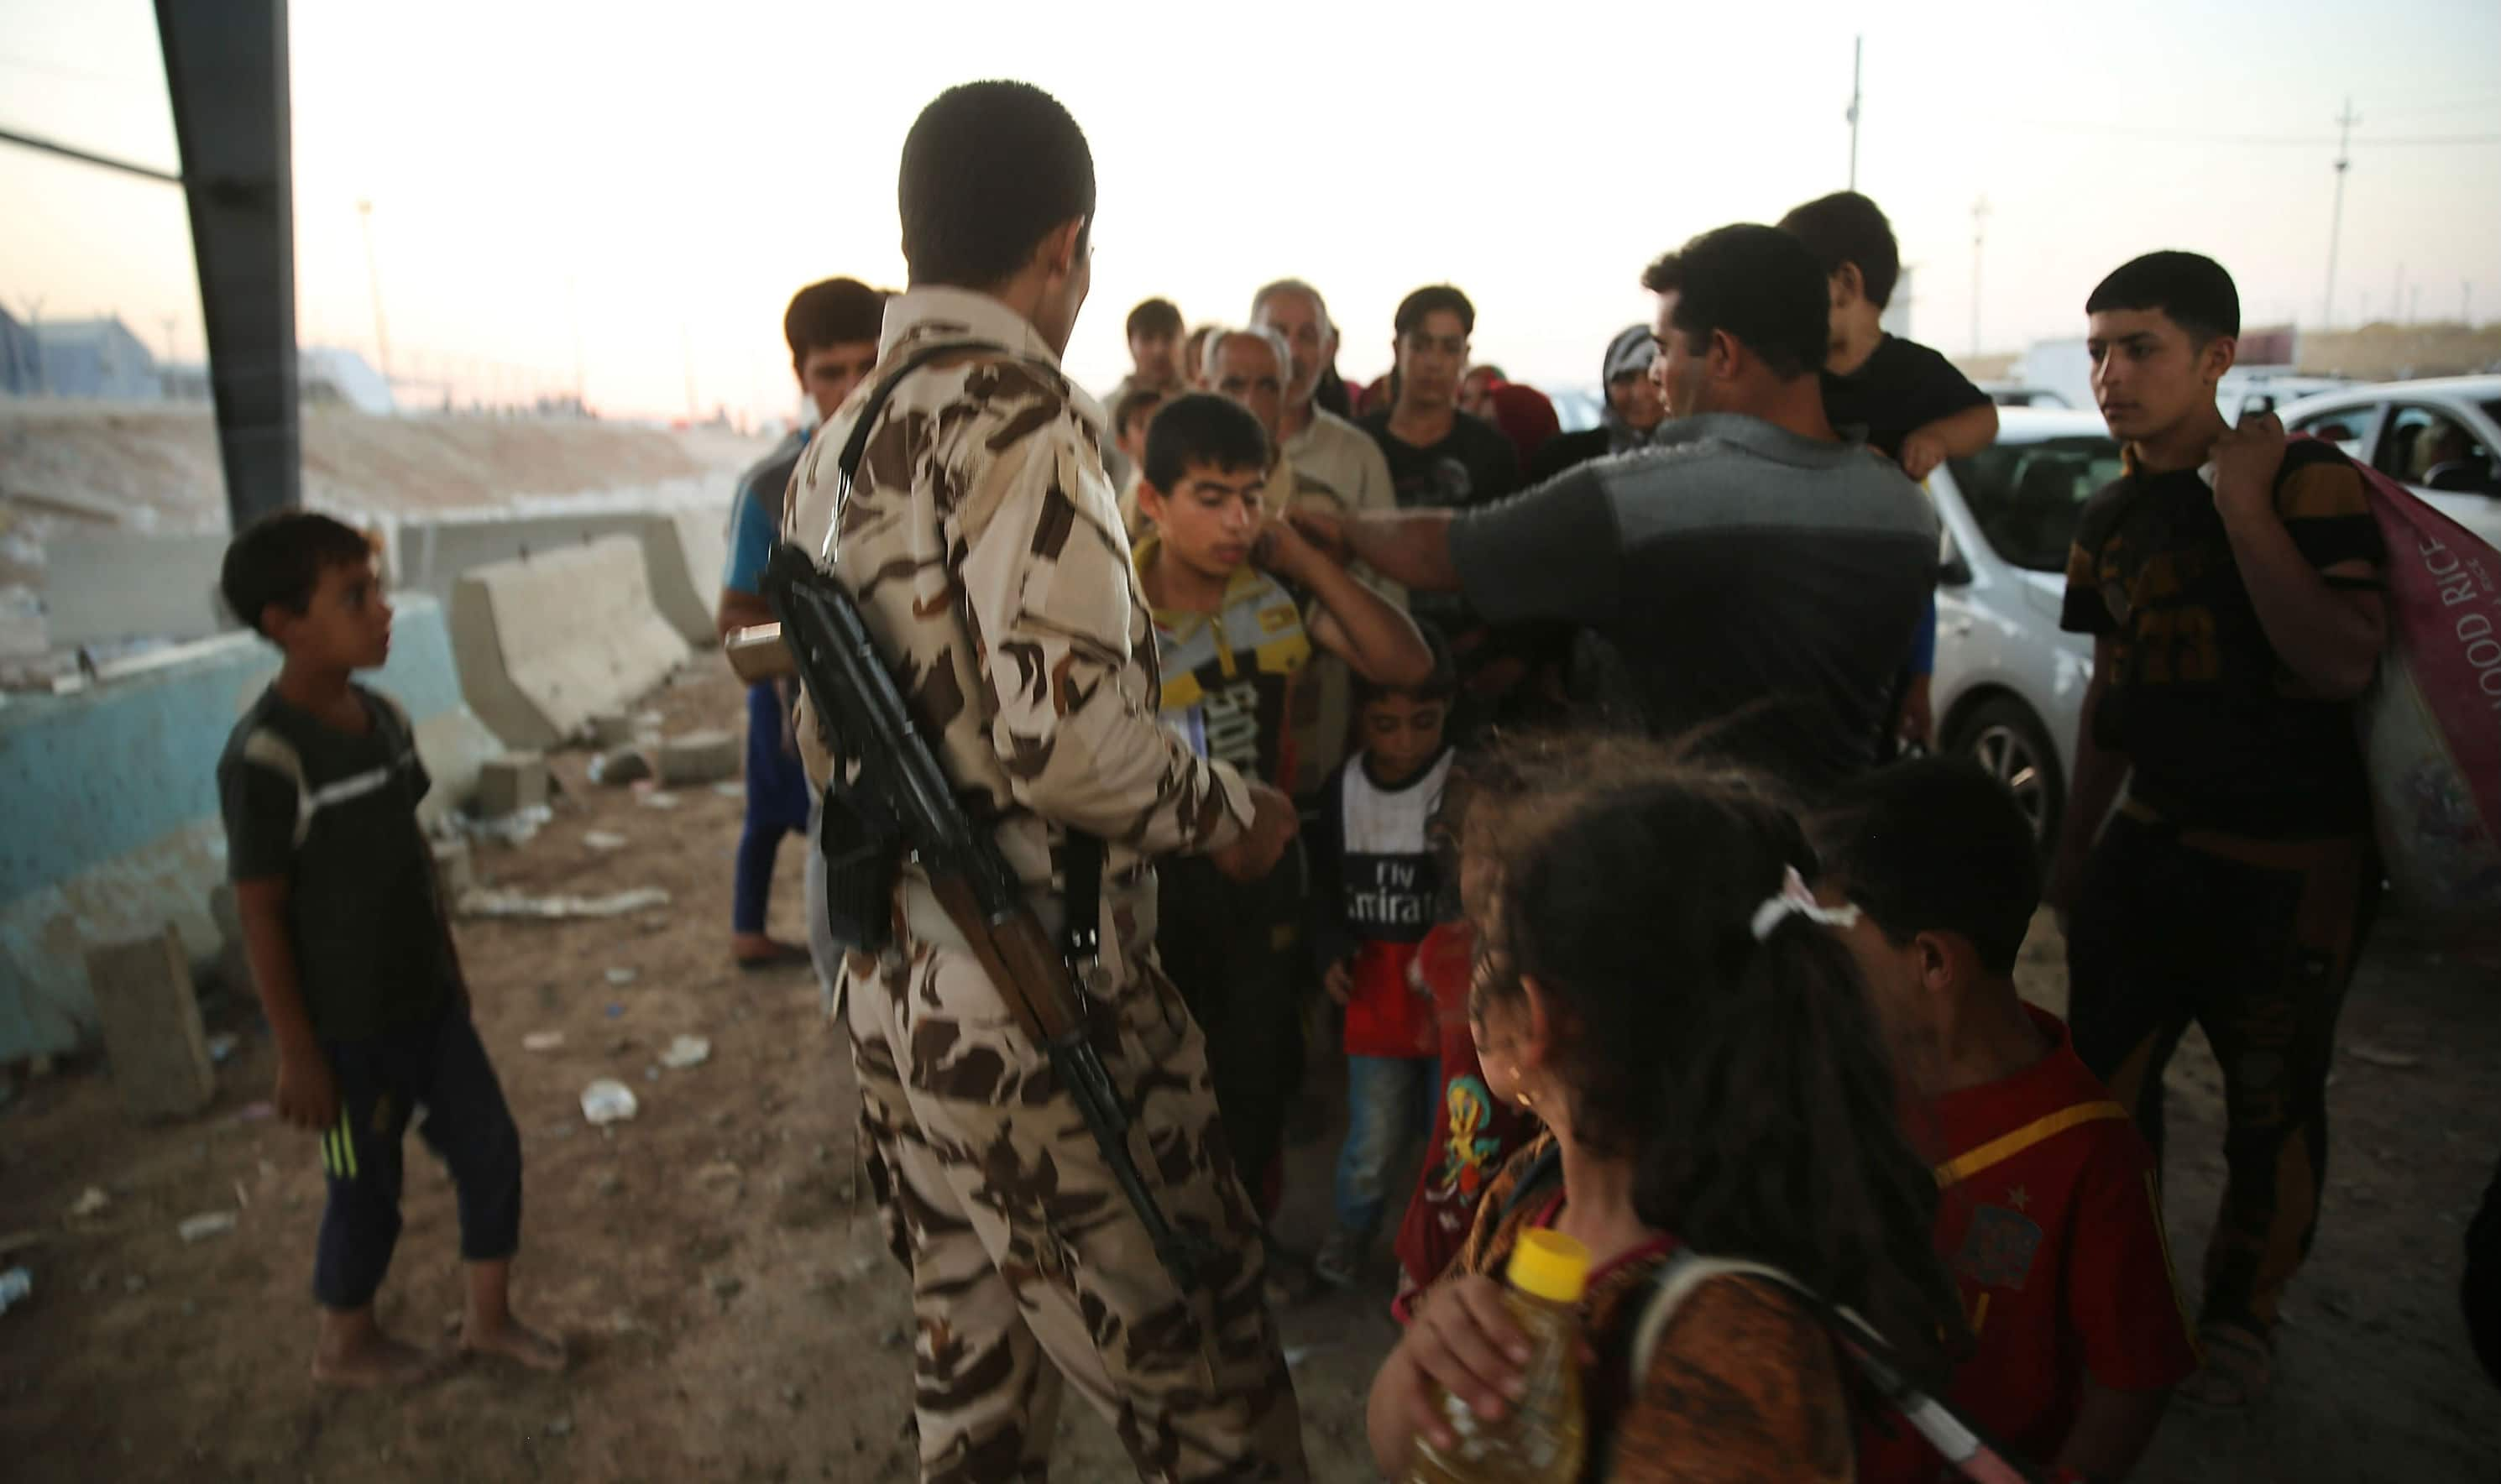 Islamic State Of Iraq And Syria Or Isis : Latest News